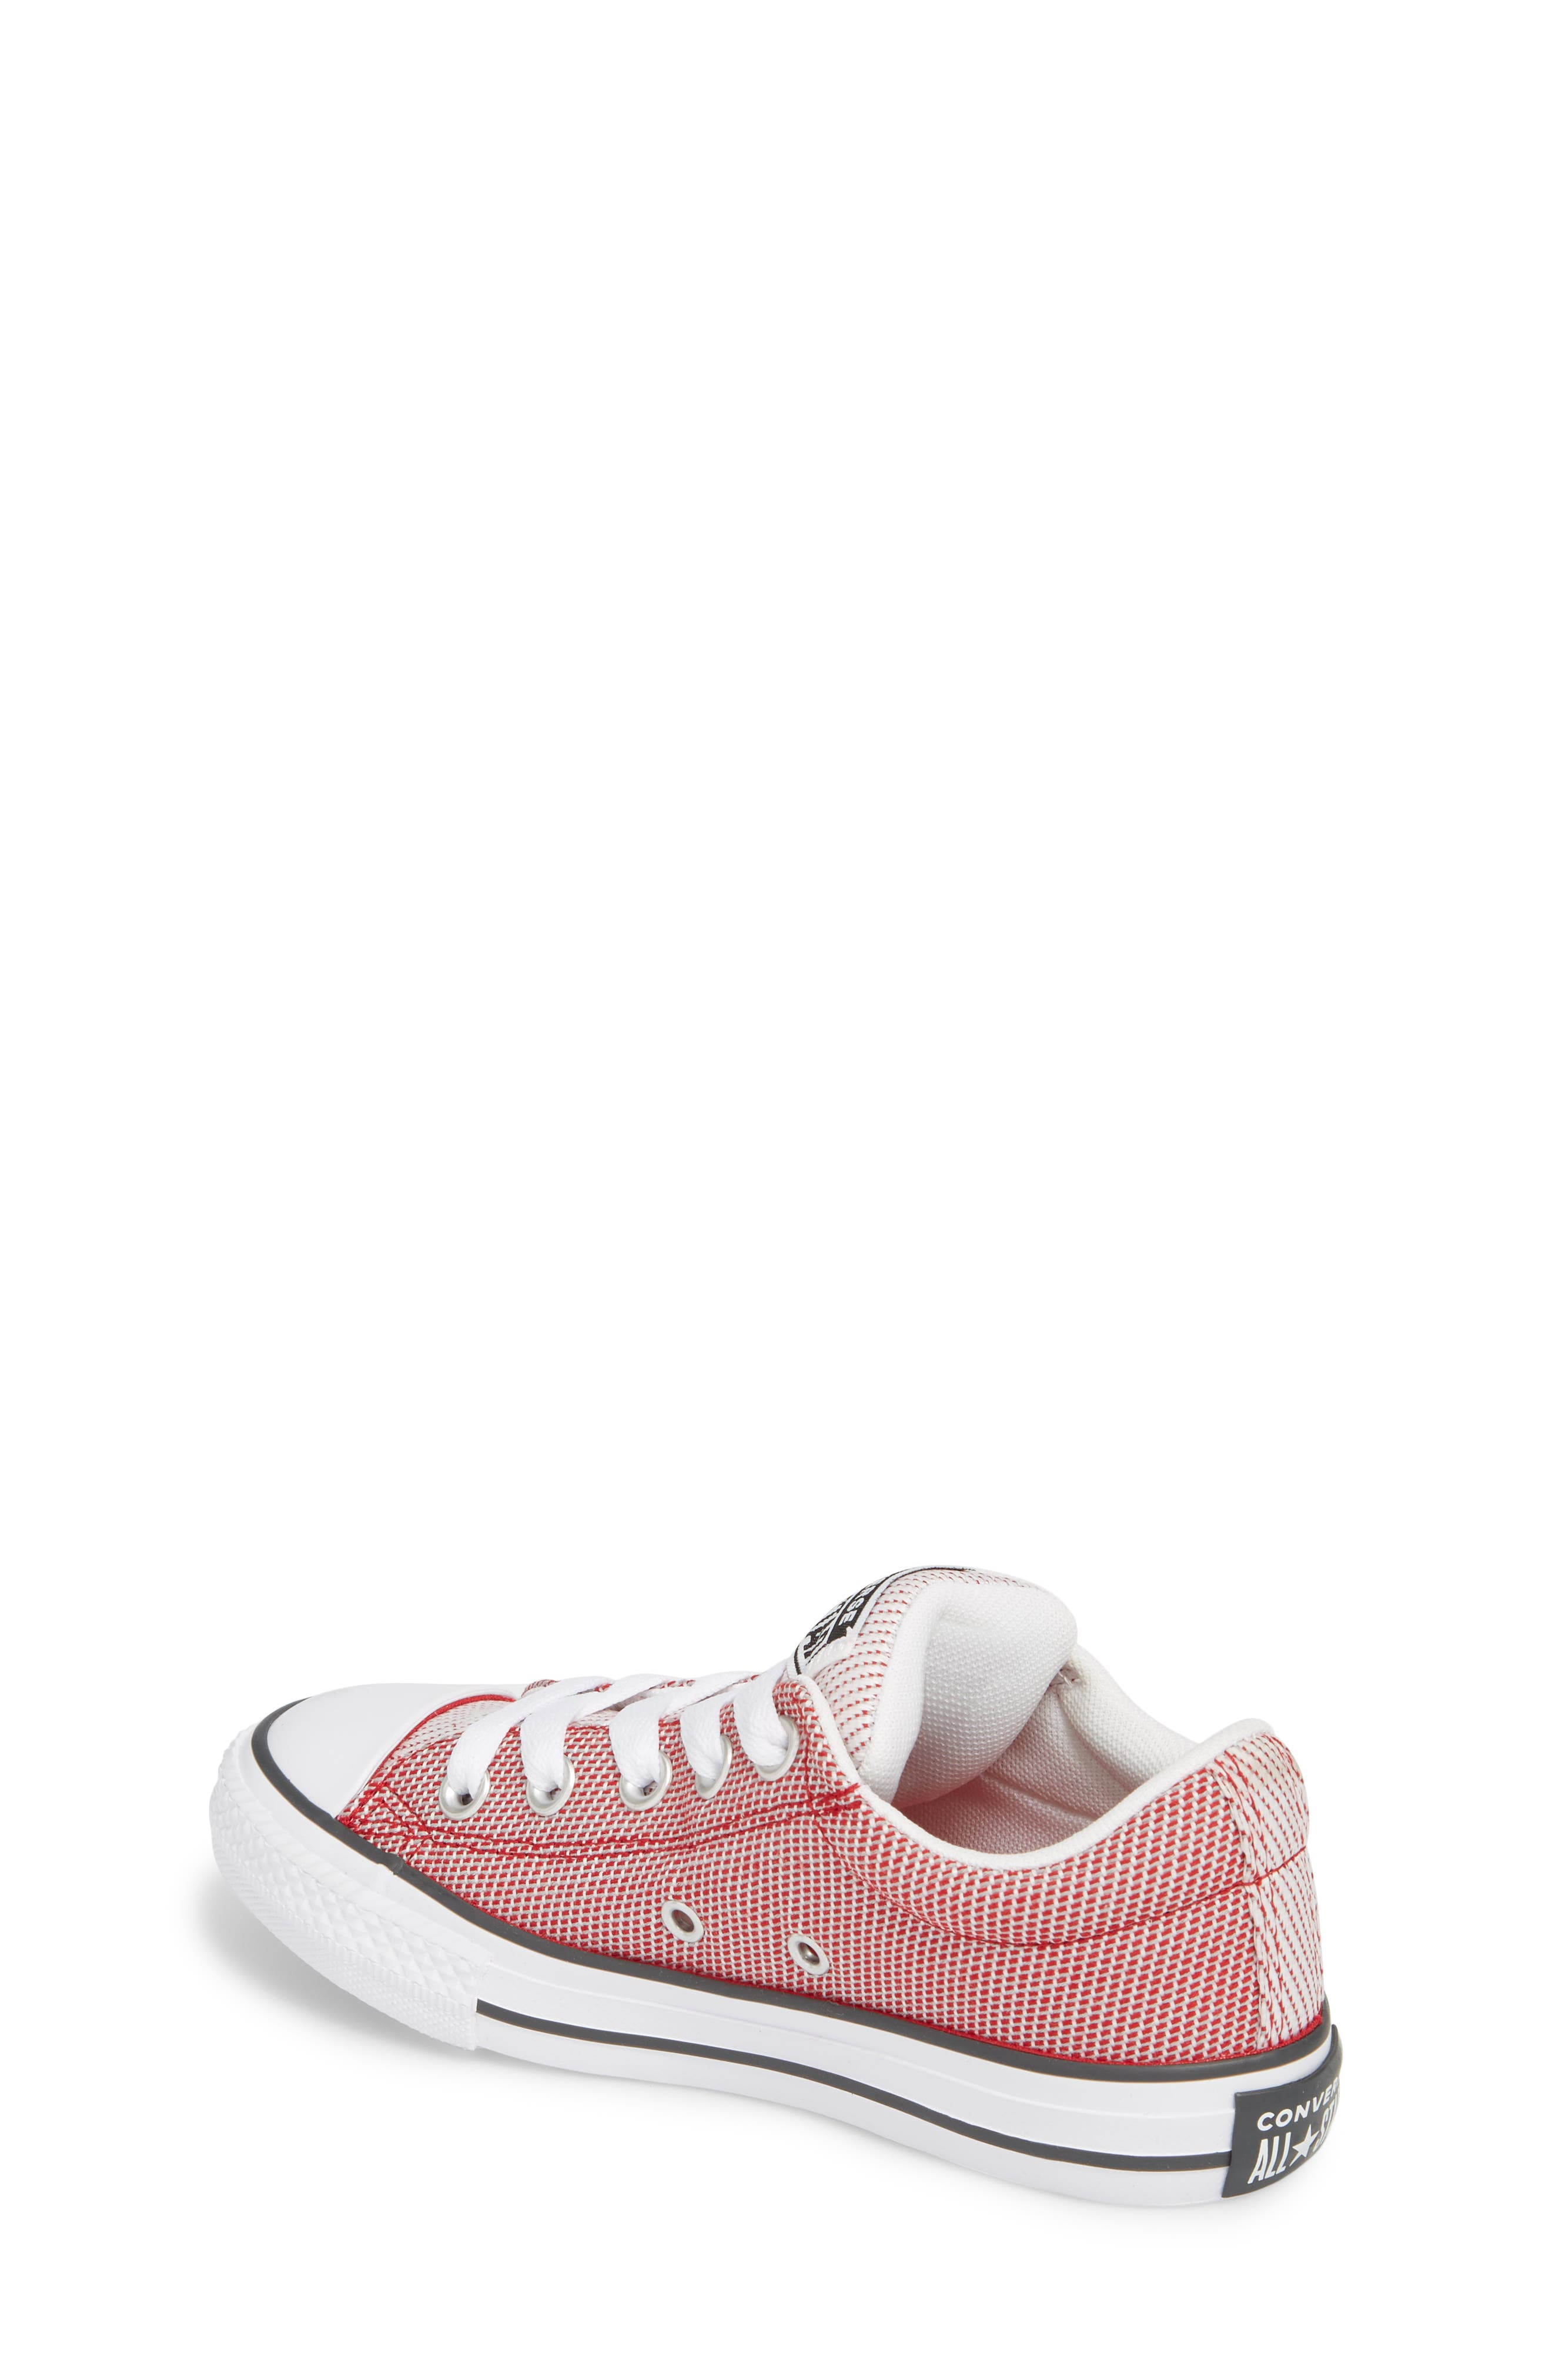 Chuck Taylor<sup>®</sup> All Star<sup>®</sup> Woven Street Sneaker,                             Alternate thumbnail 2, color,                             Gym Red